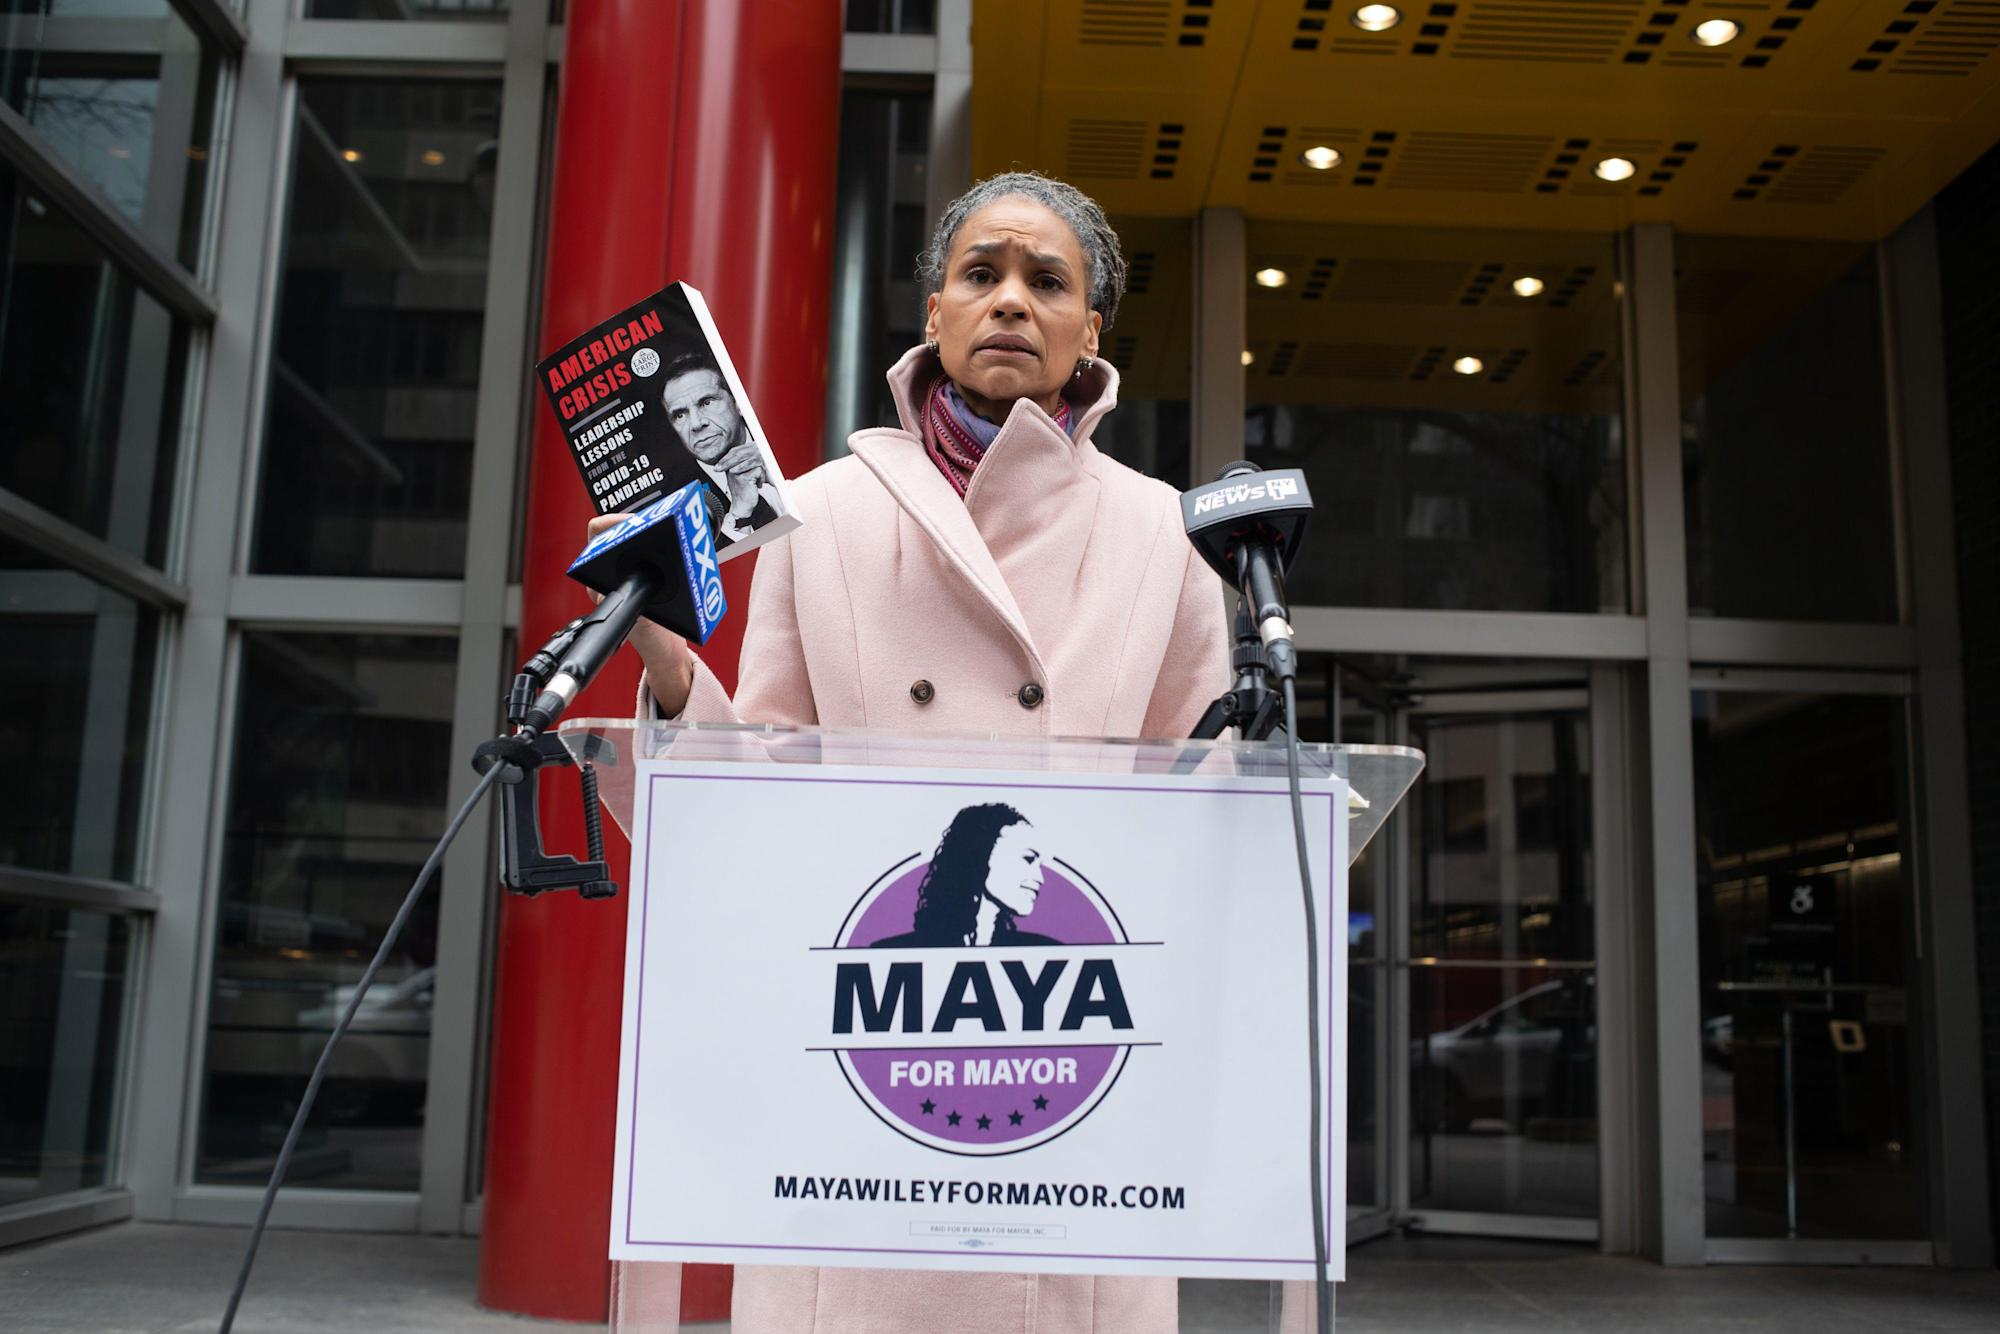 Mayoral wannabe Maya Wiley slams Cuomo over book scandal, vows NYC reforms